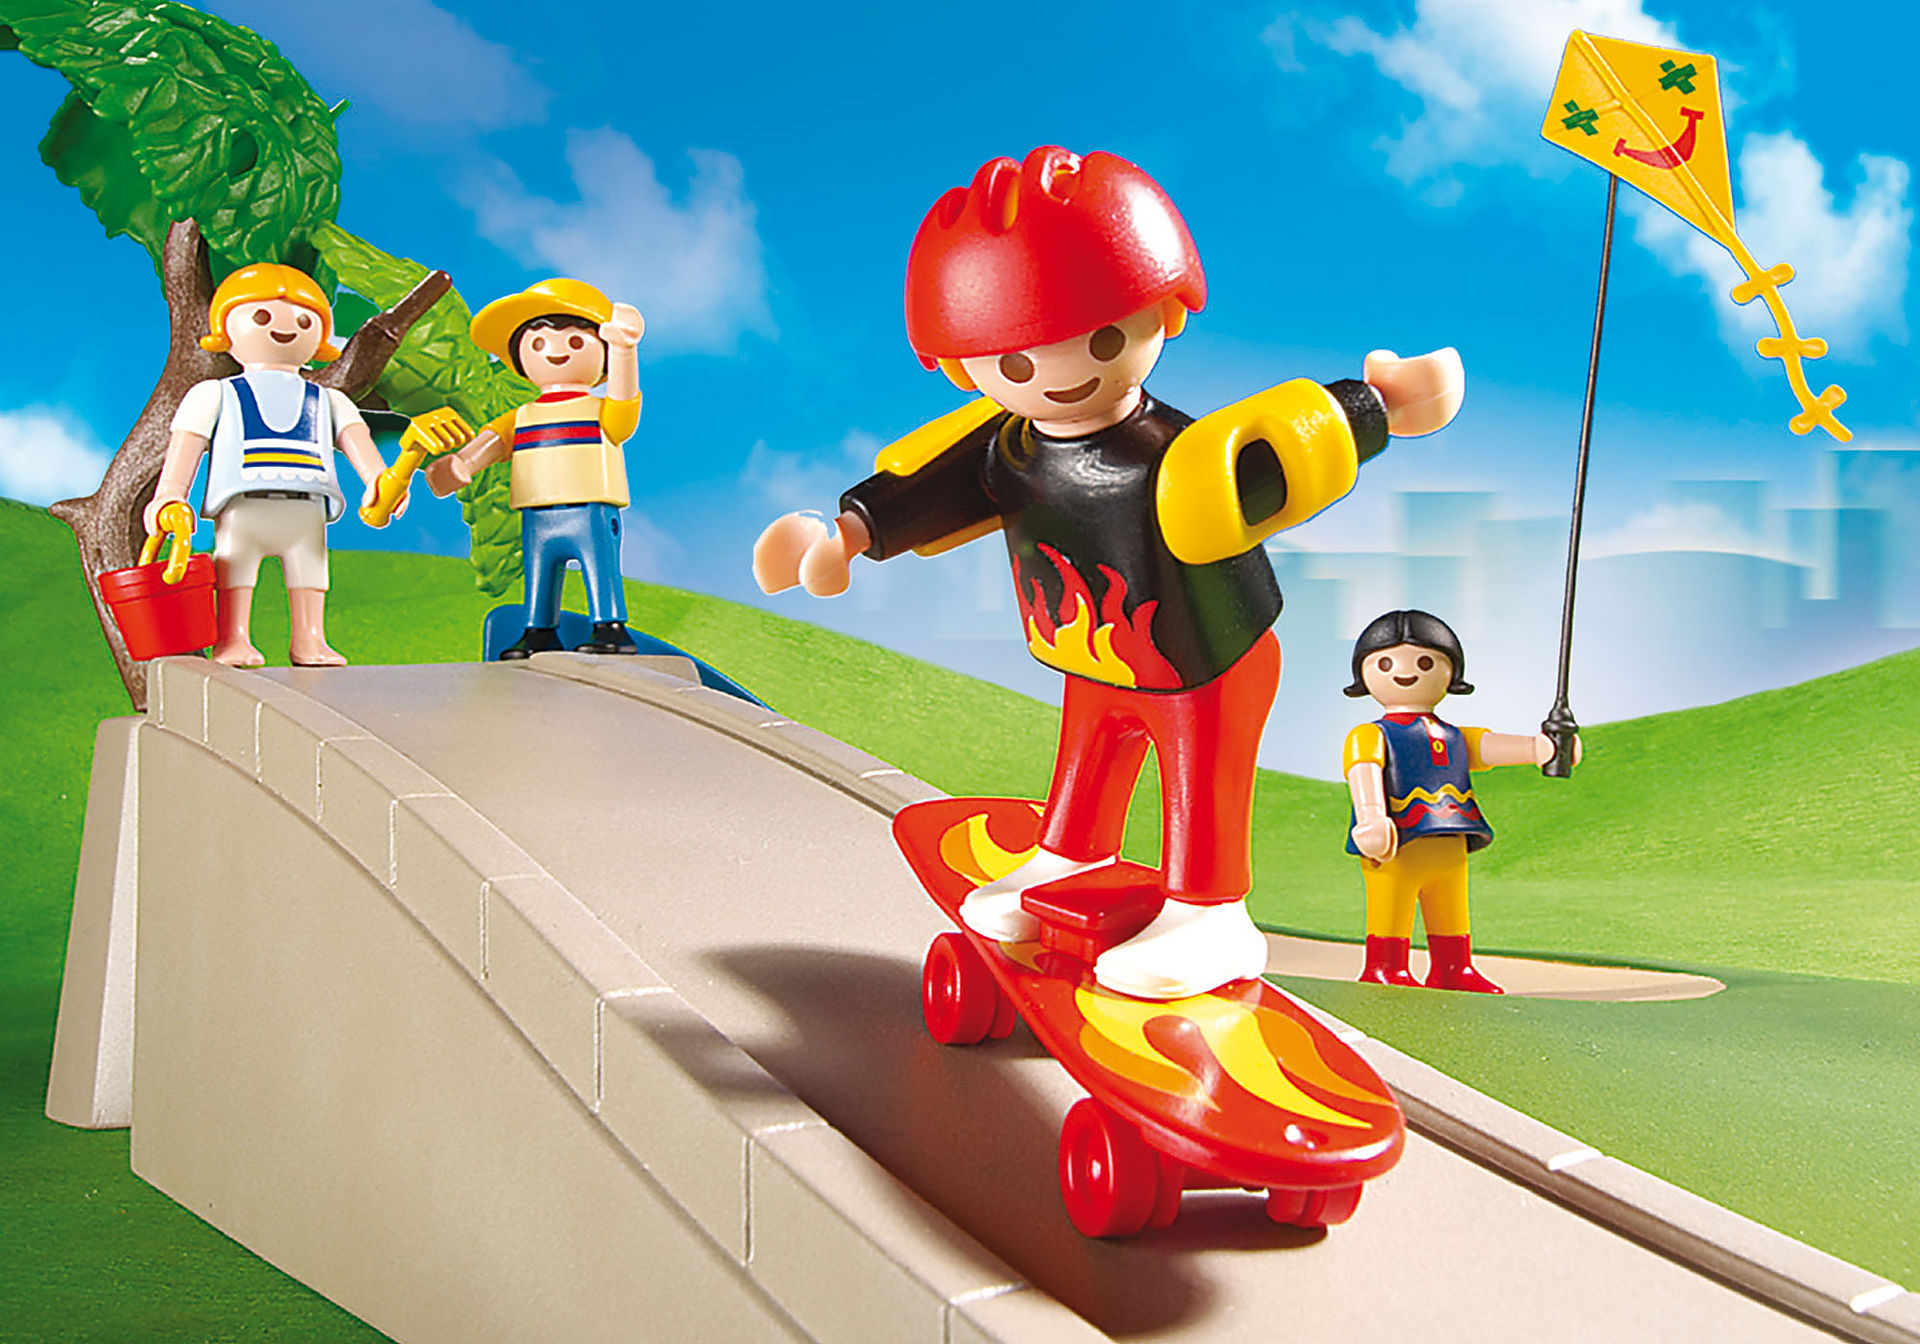 http://media.playmobil.com/i/playmobil/4132_product_extra1/SuperSet Spielplatz